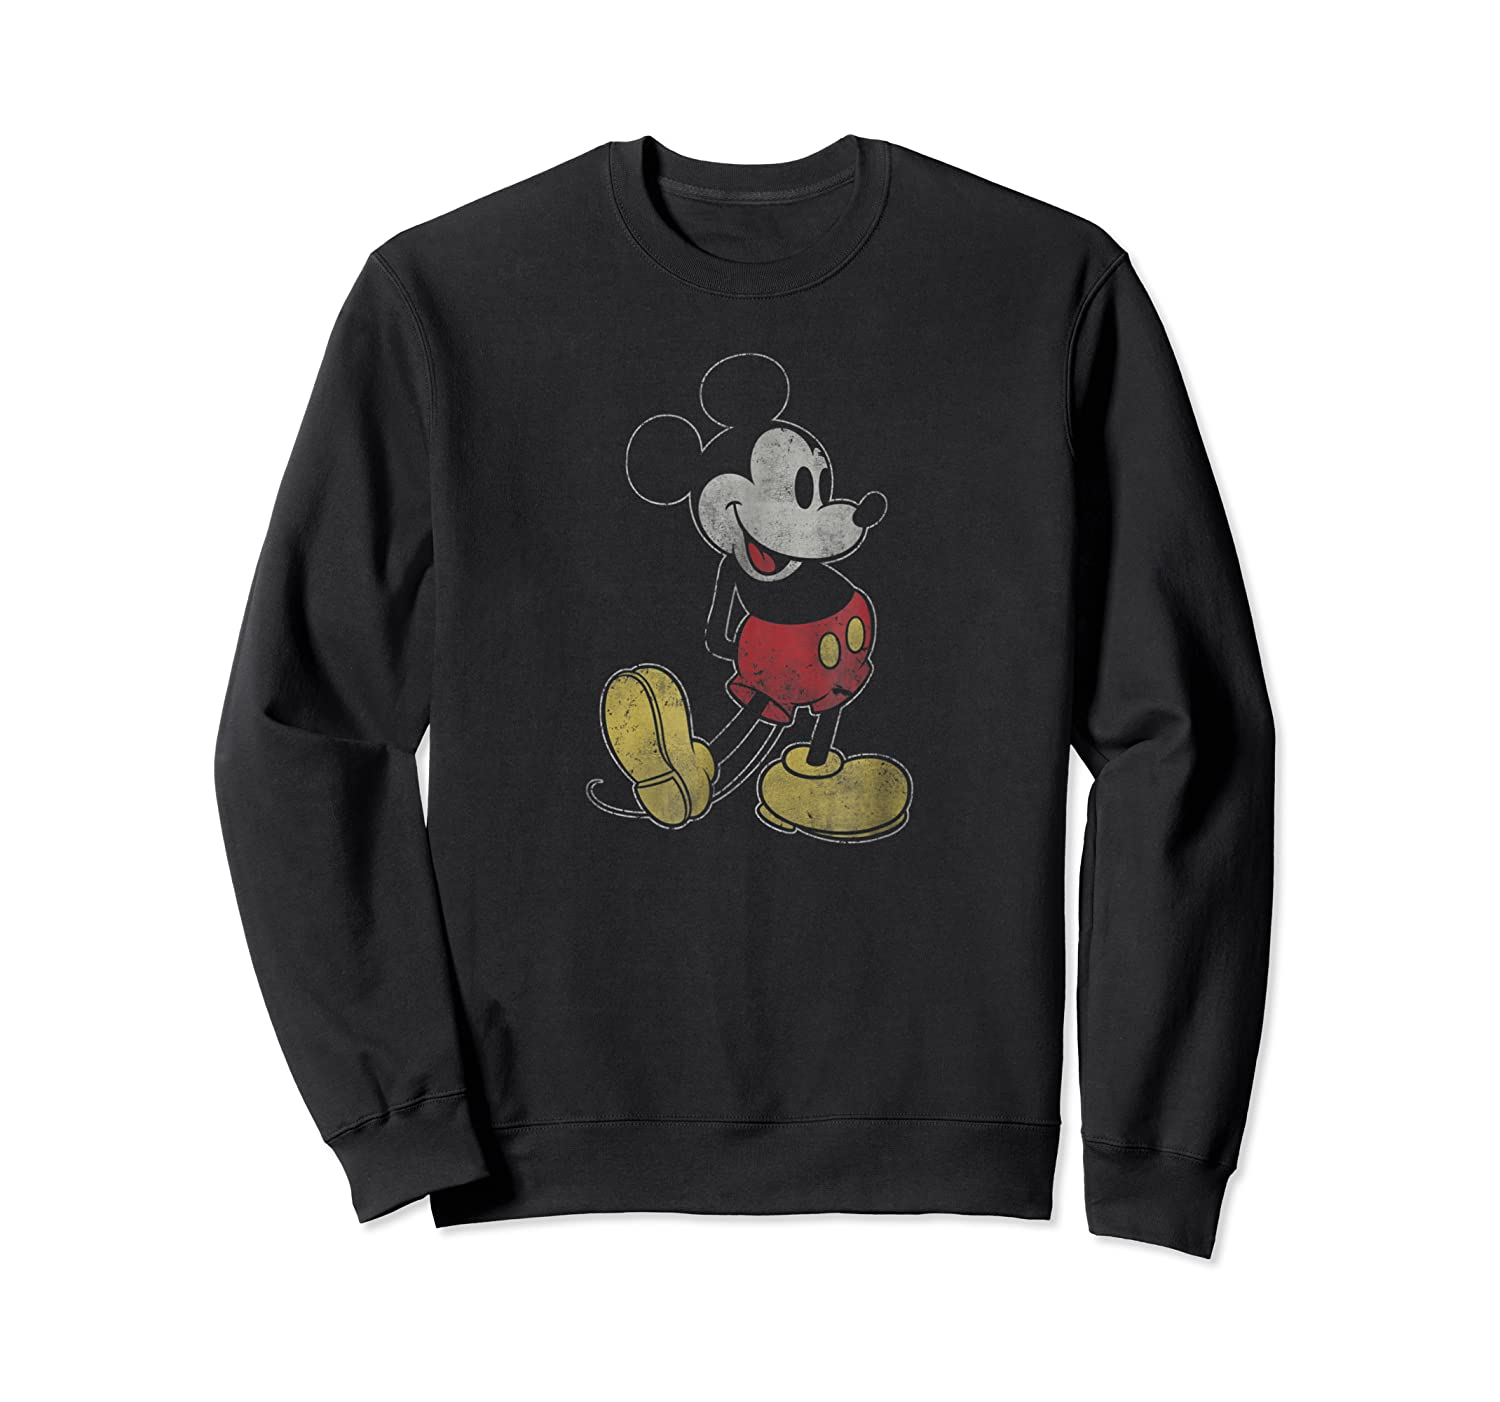 Disney Mickey Mouse Outline T Shirt Crewneck Sweater